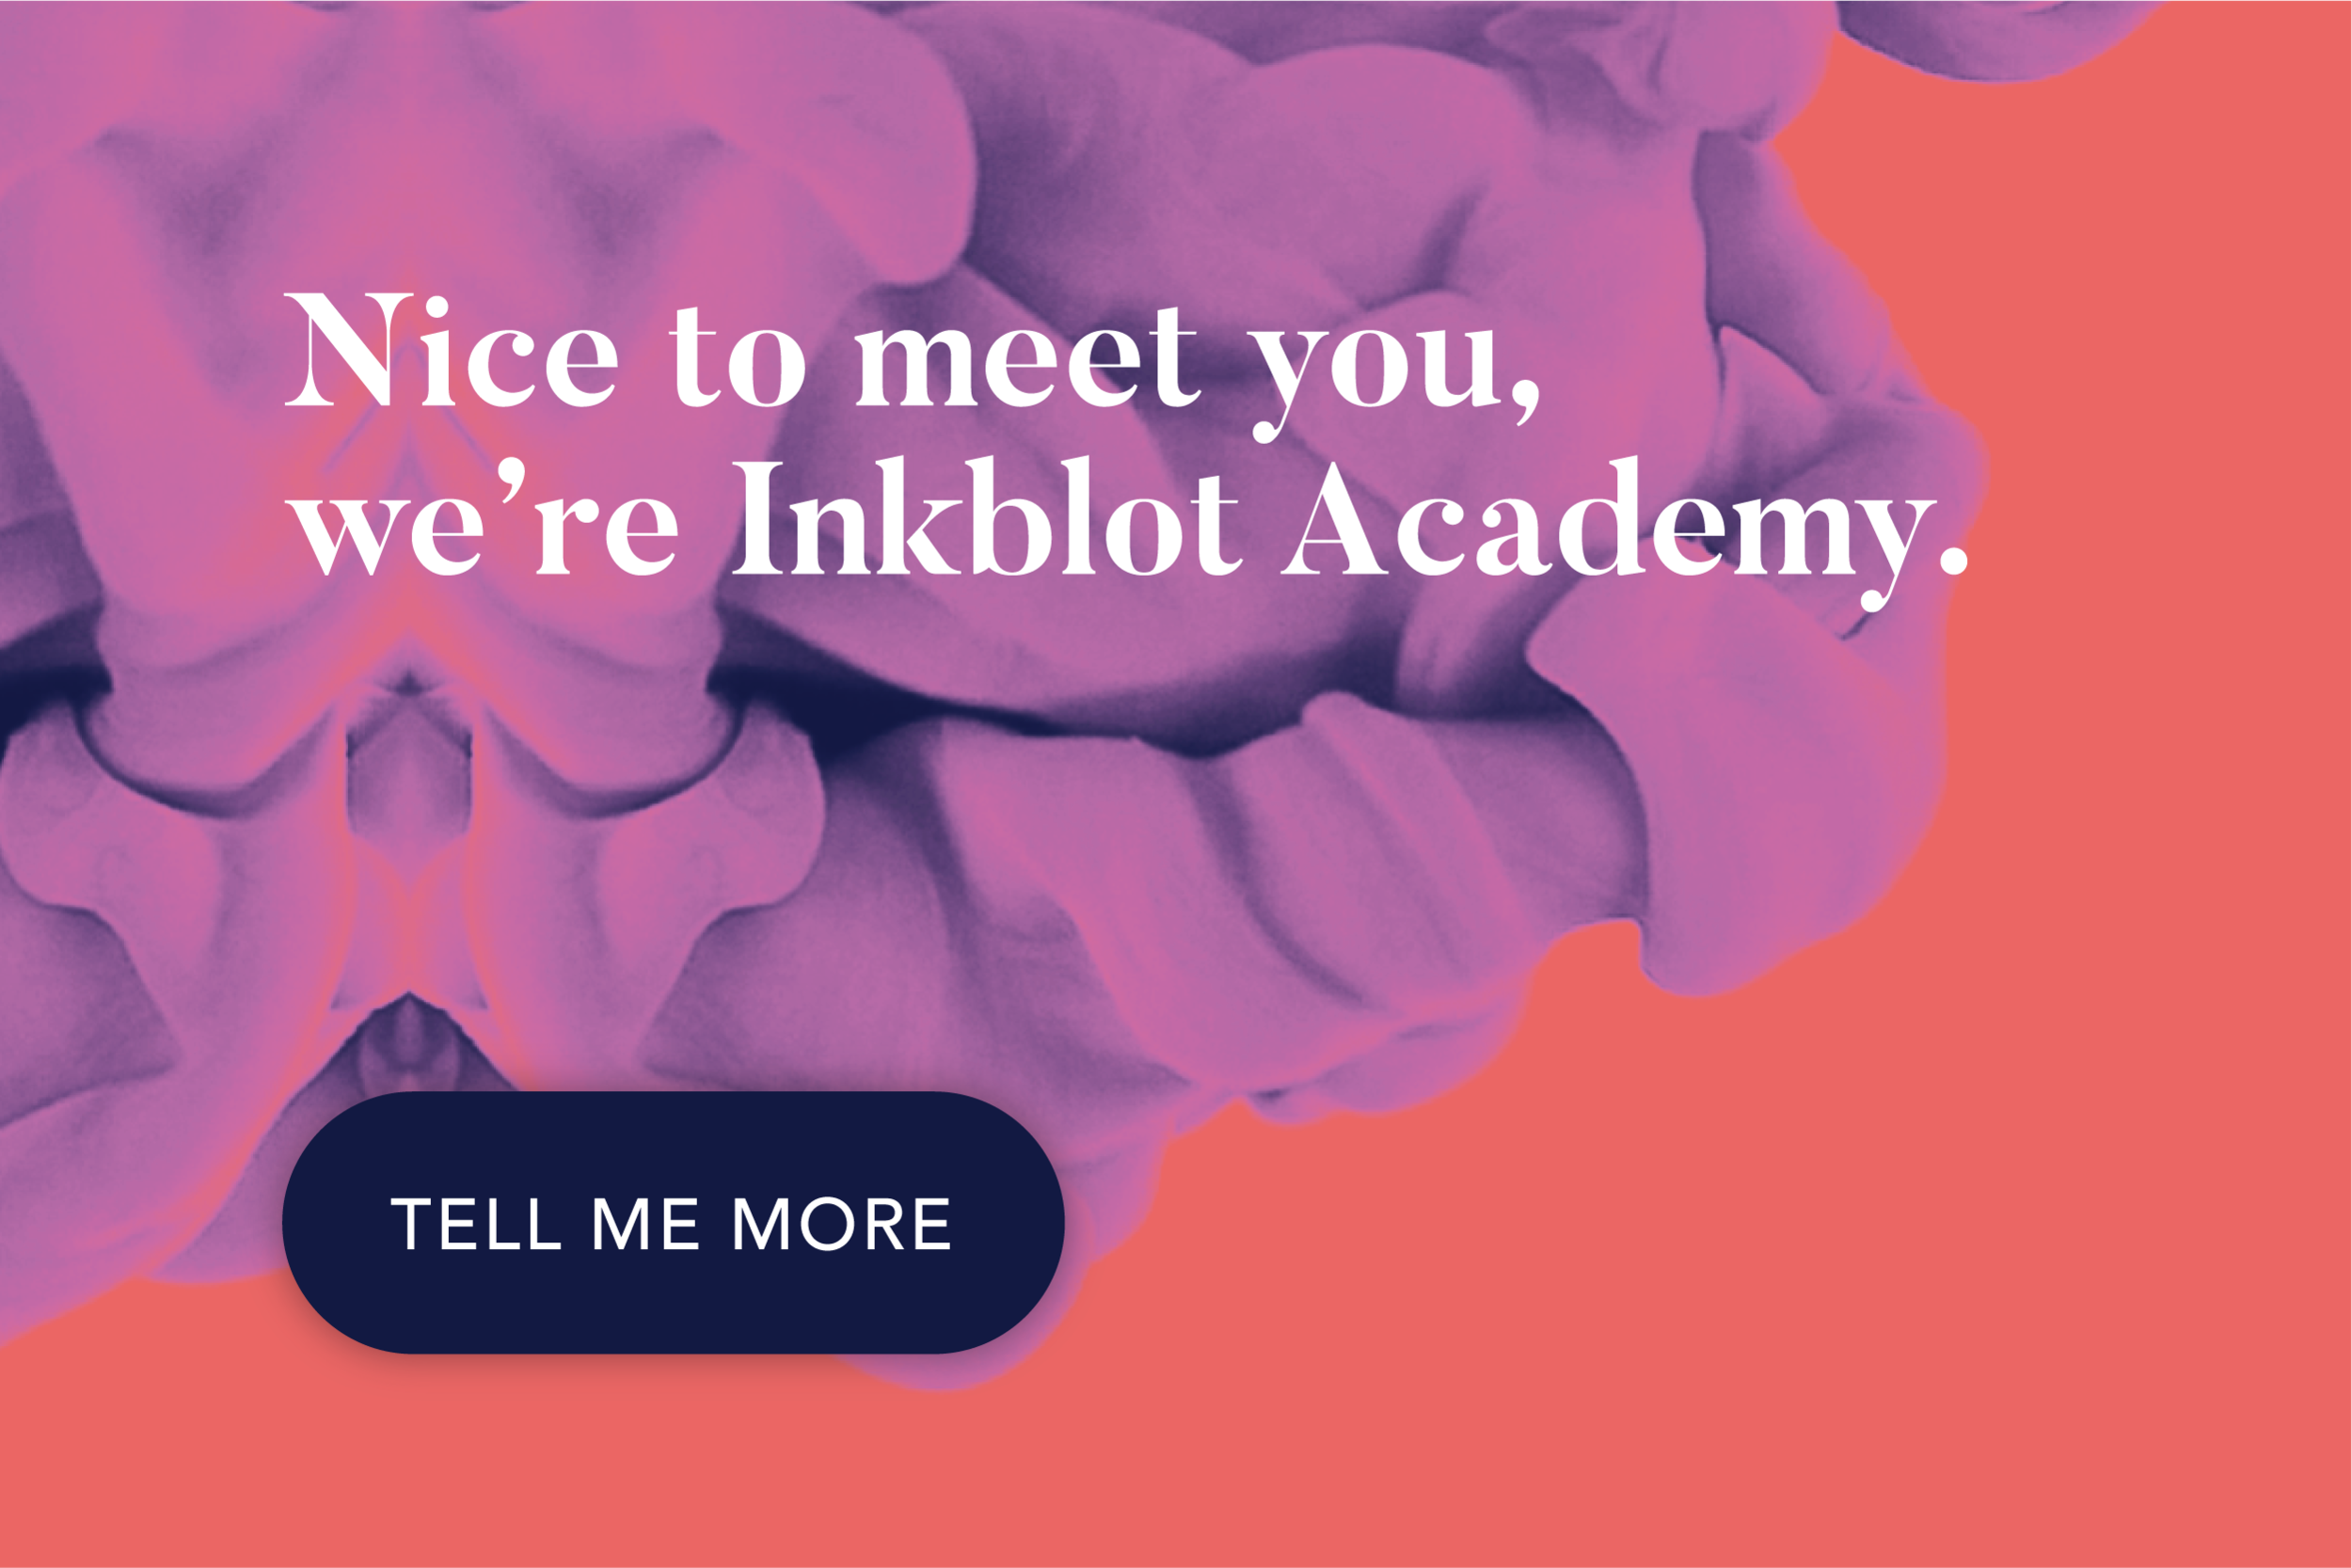 Inkblot Academy Research Consulting Statistics Consulting About